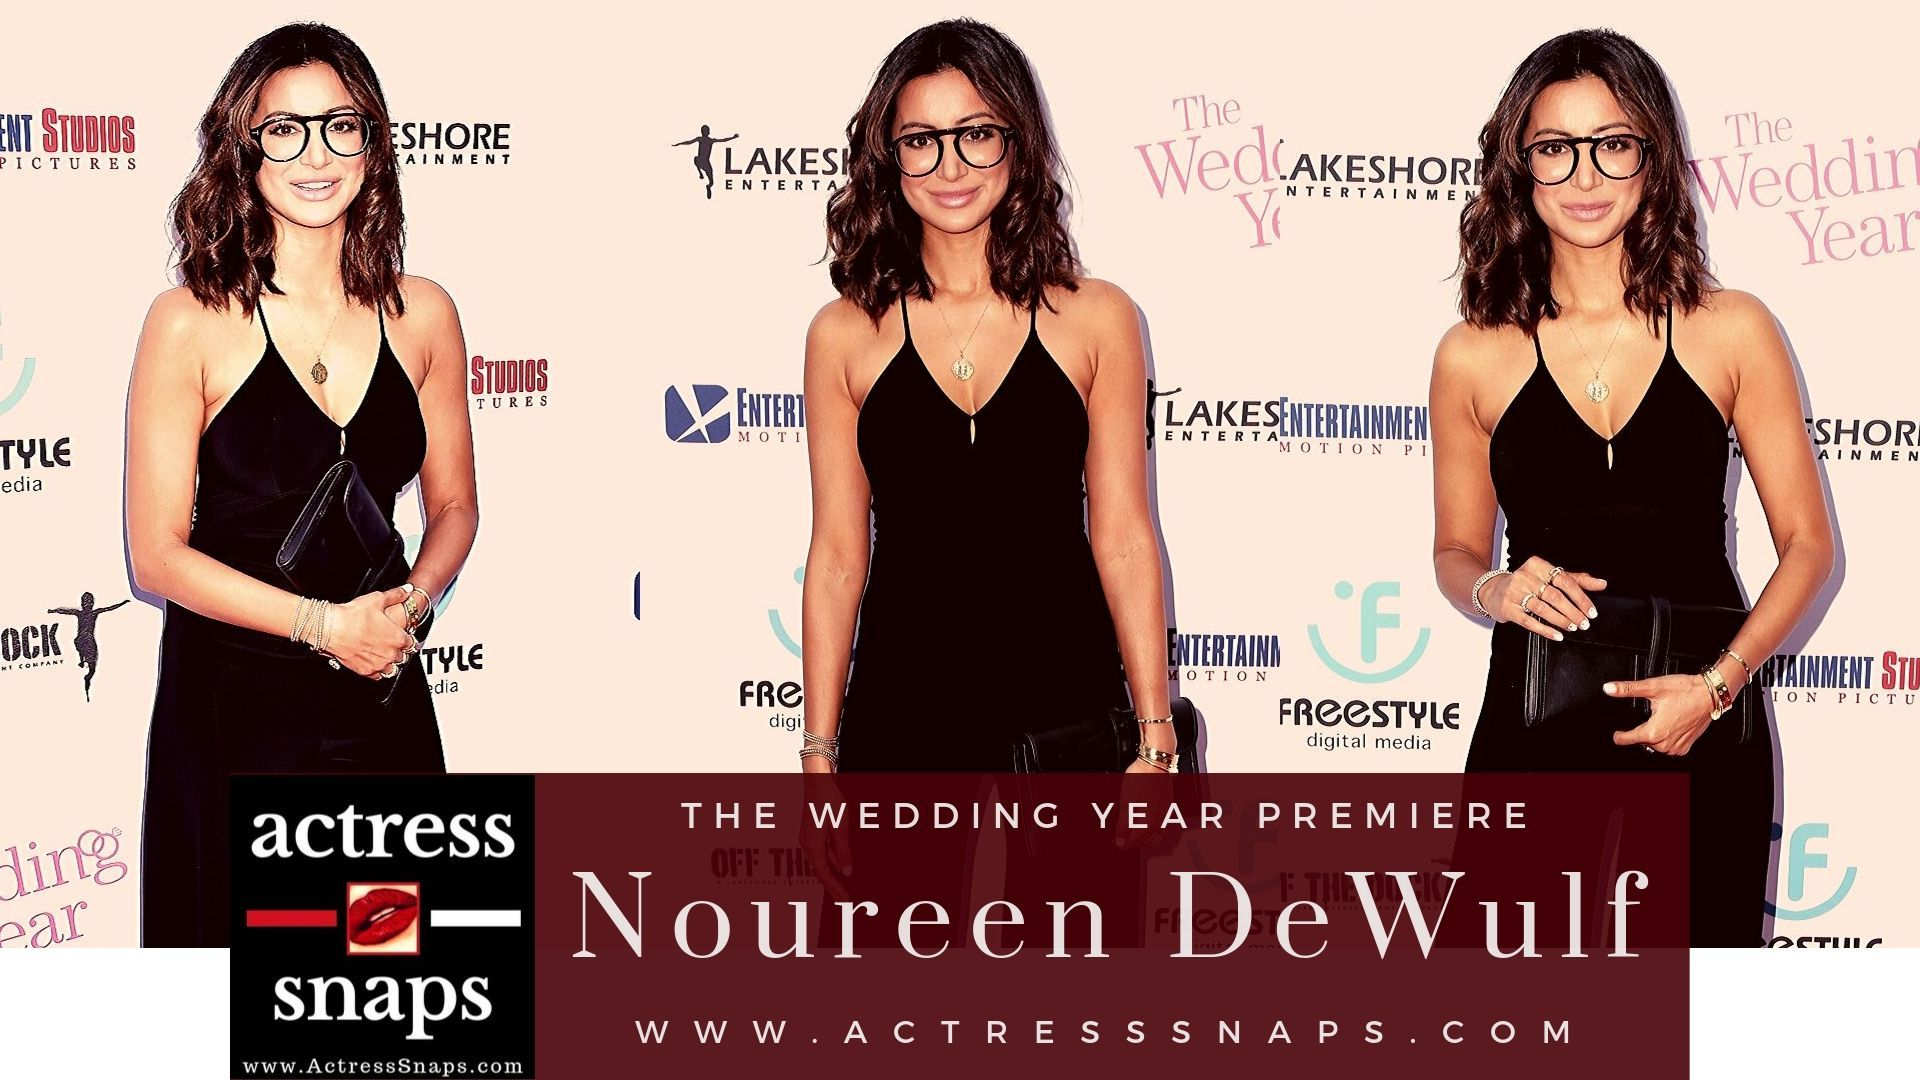 Noureen DeWulf - The Wedding Year Premiere - Sexy Actress Pictures | Hot Actress Pictures - ActressSnaps.com